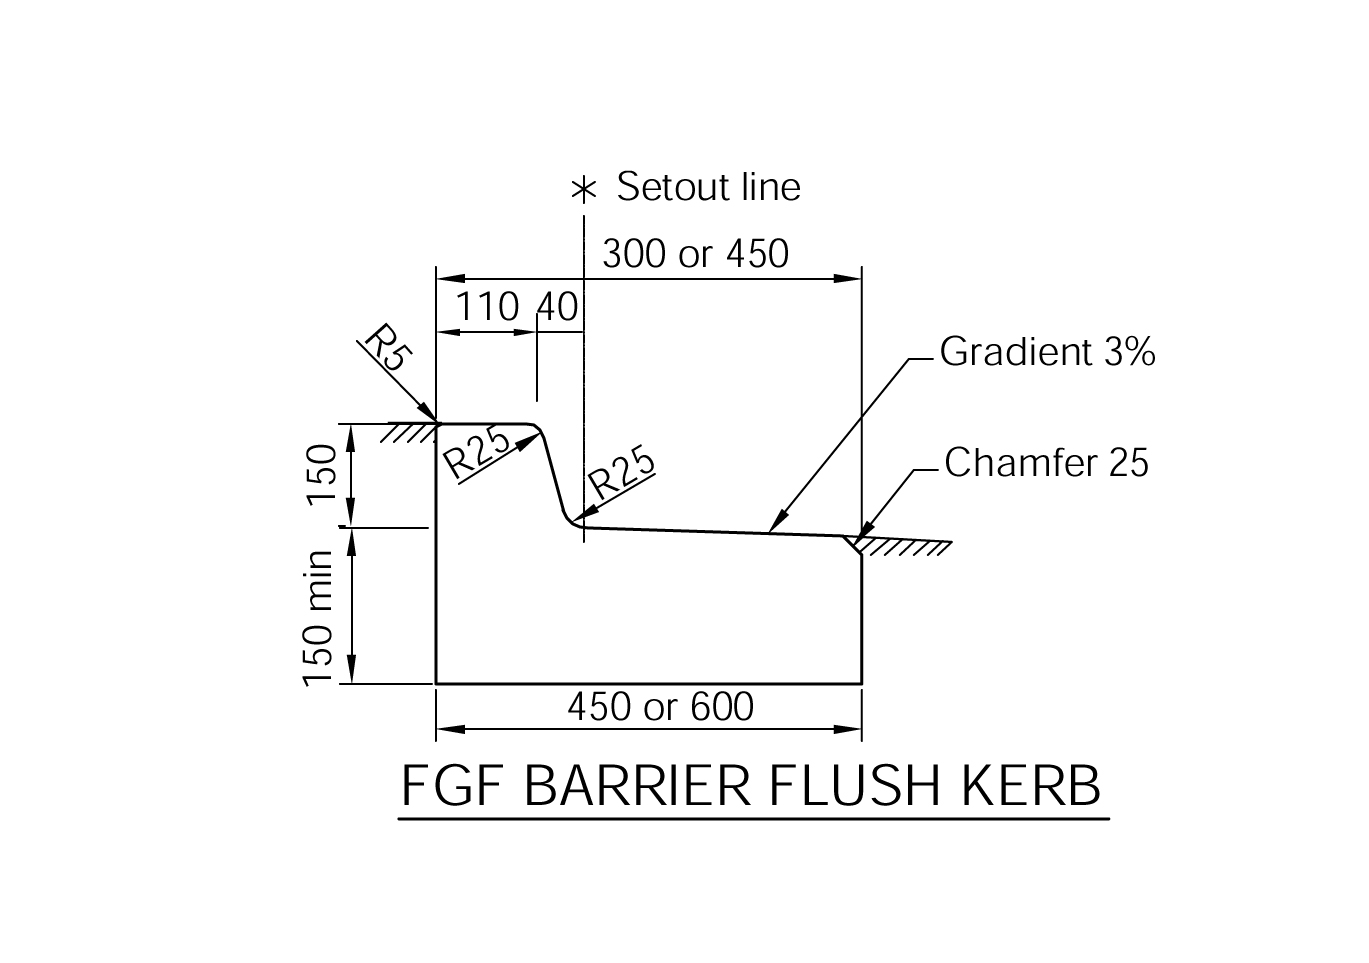 FGF Barrier Flush Kerb